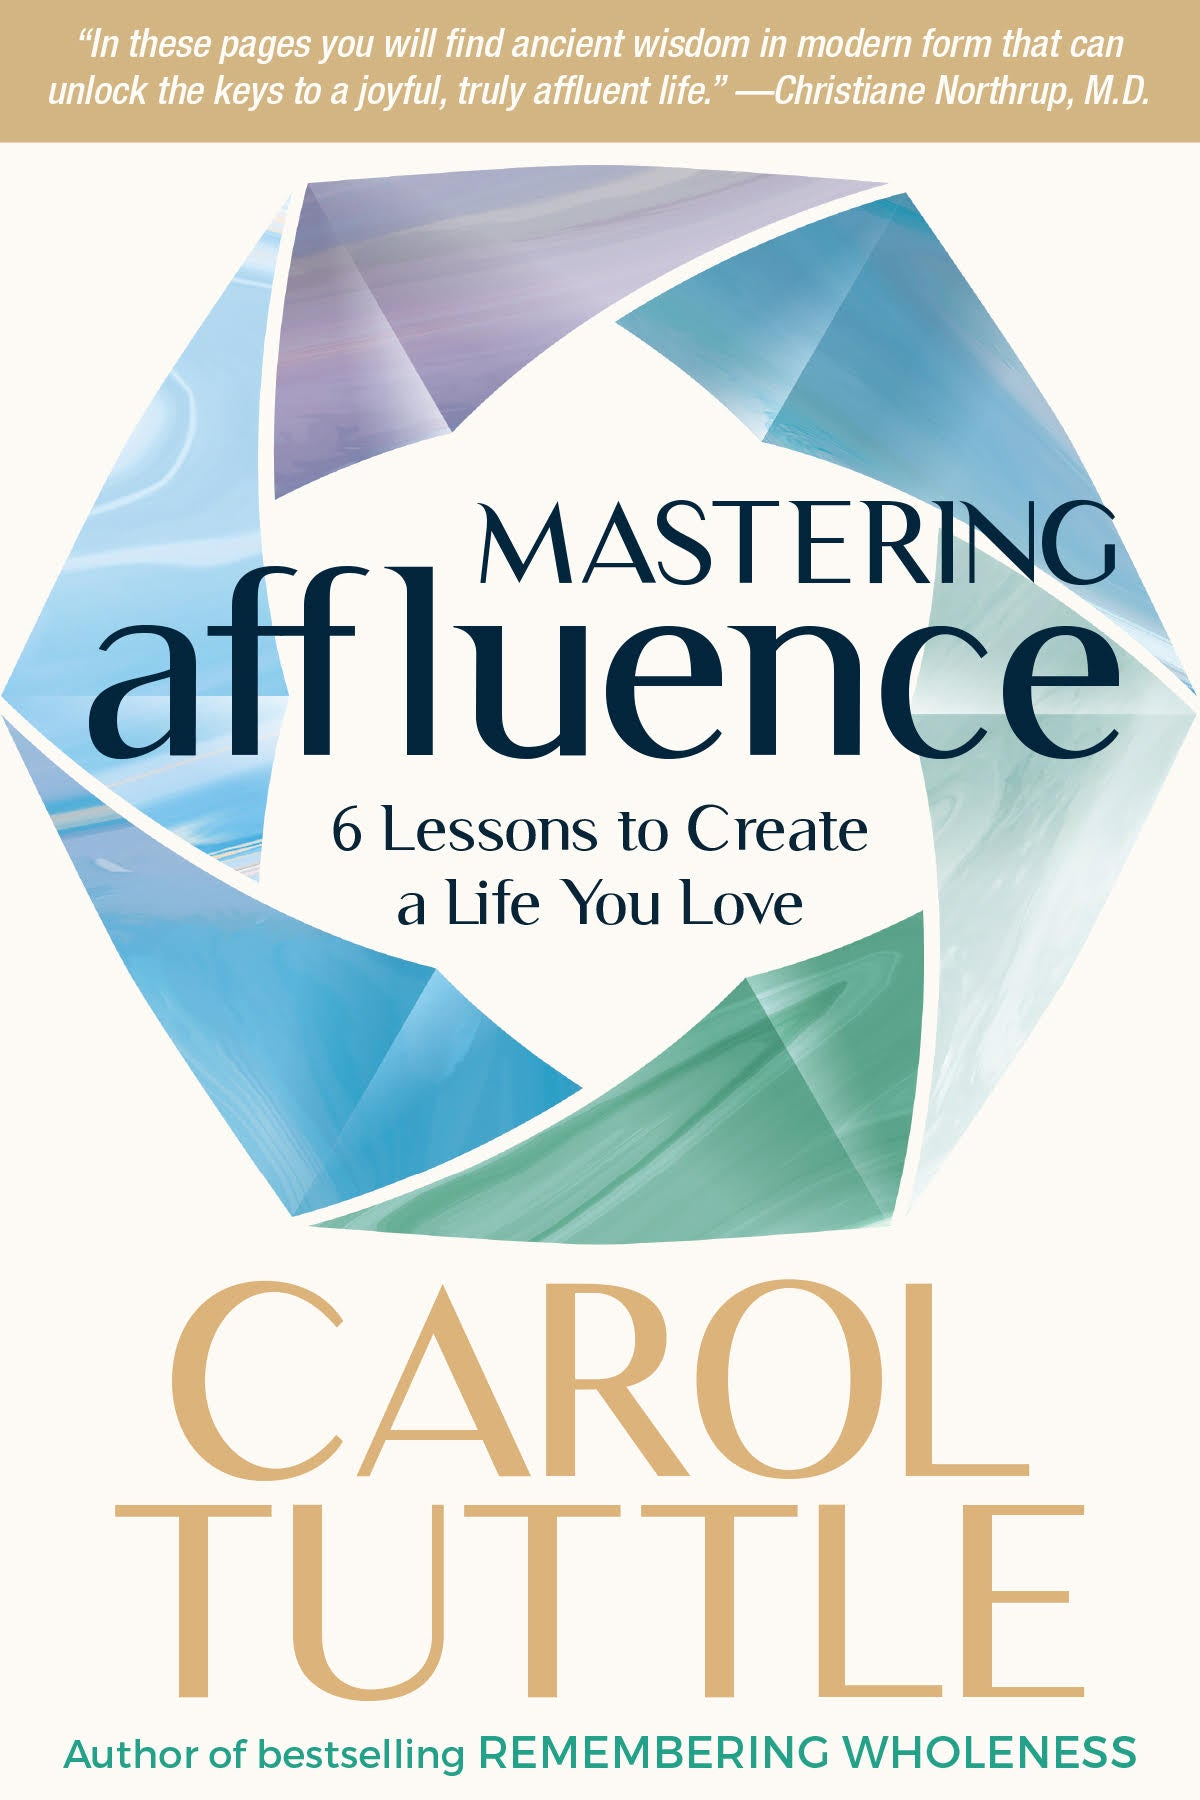 Special offering: Mastering Affluence: 6 Lessons to Create a Life You Love